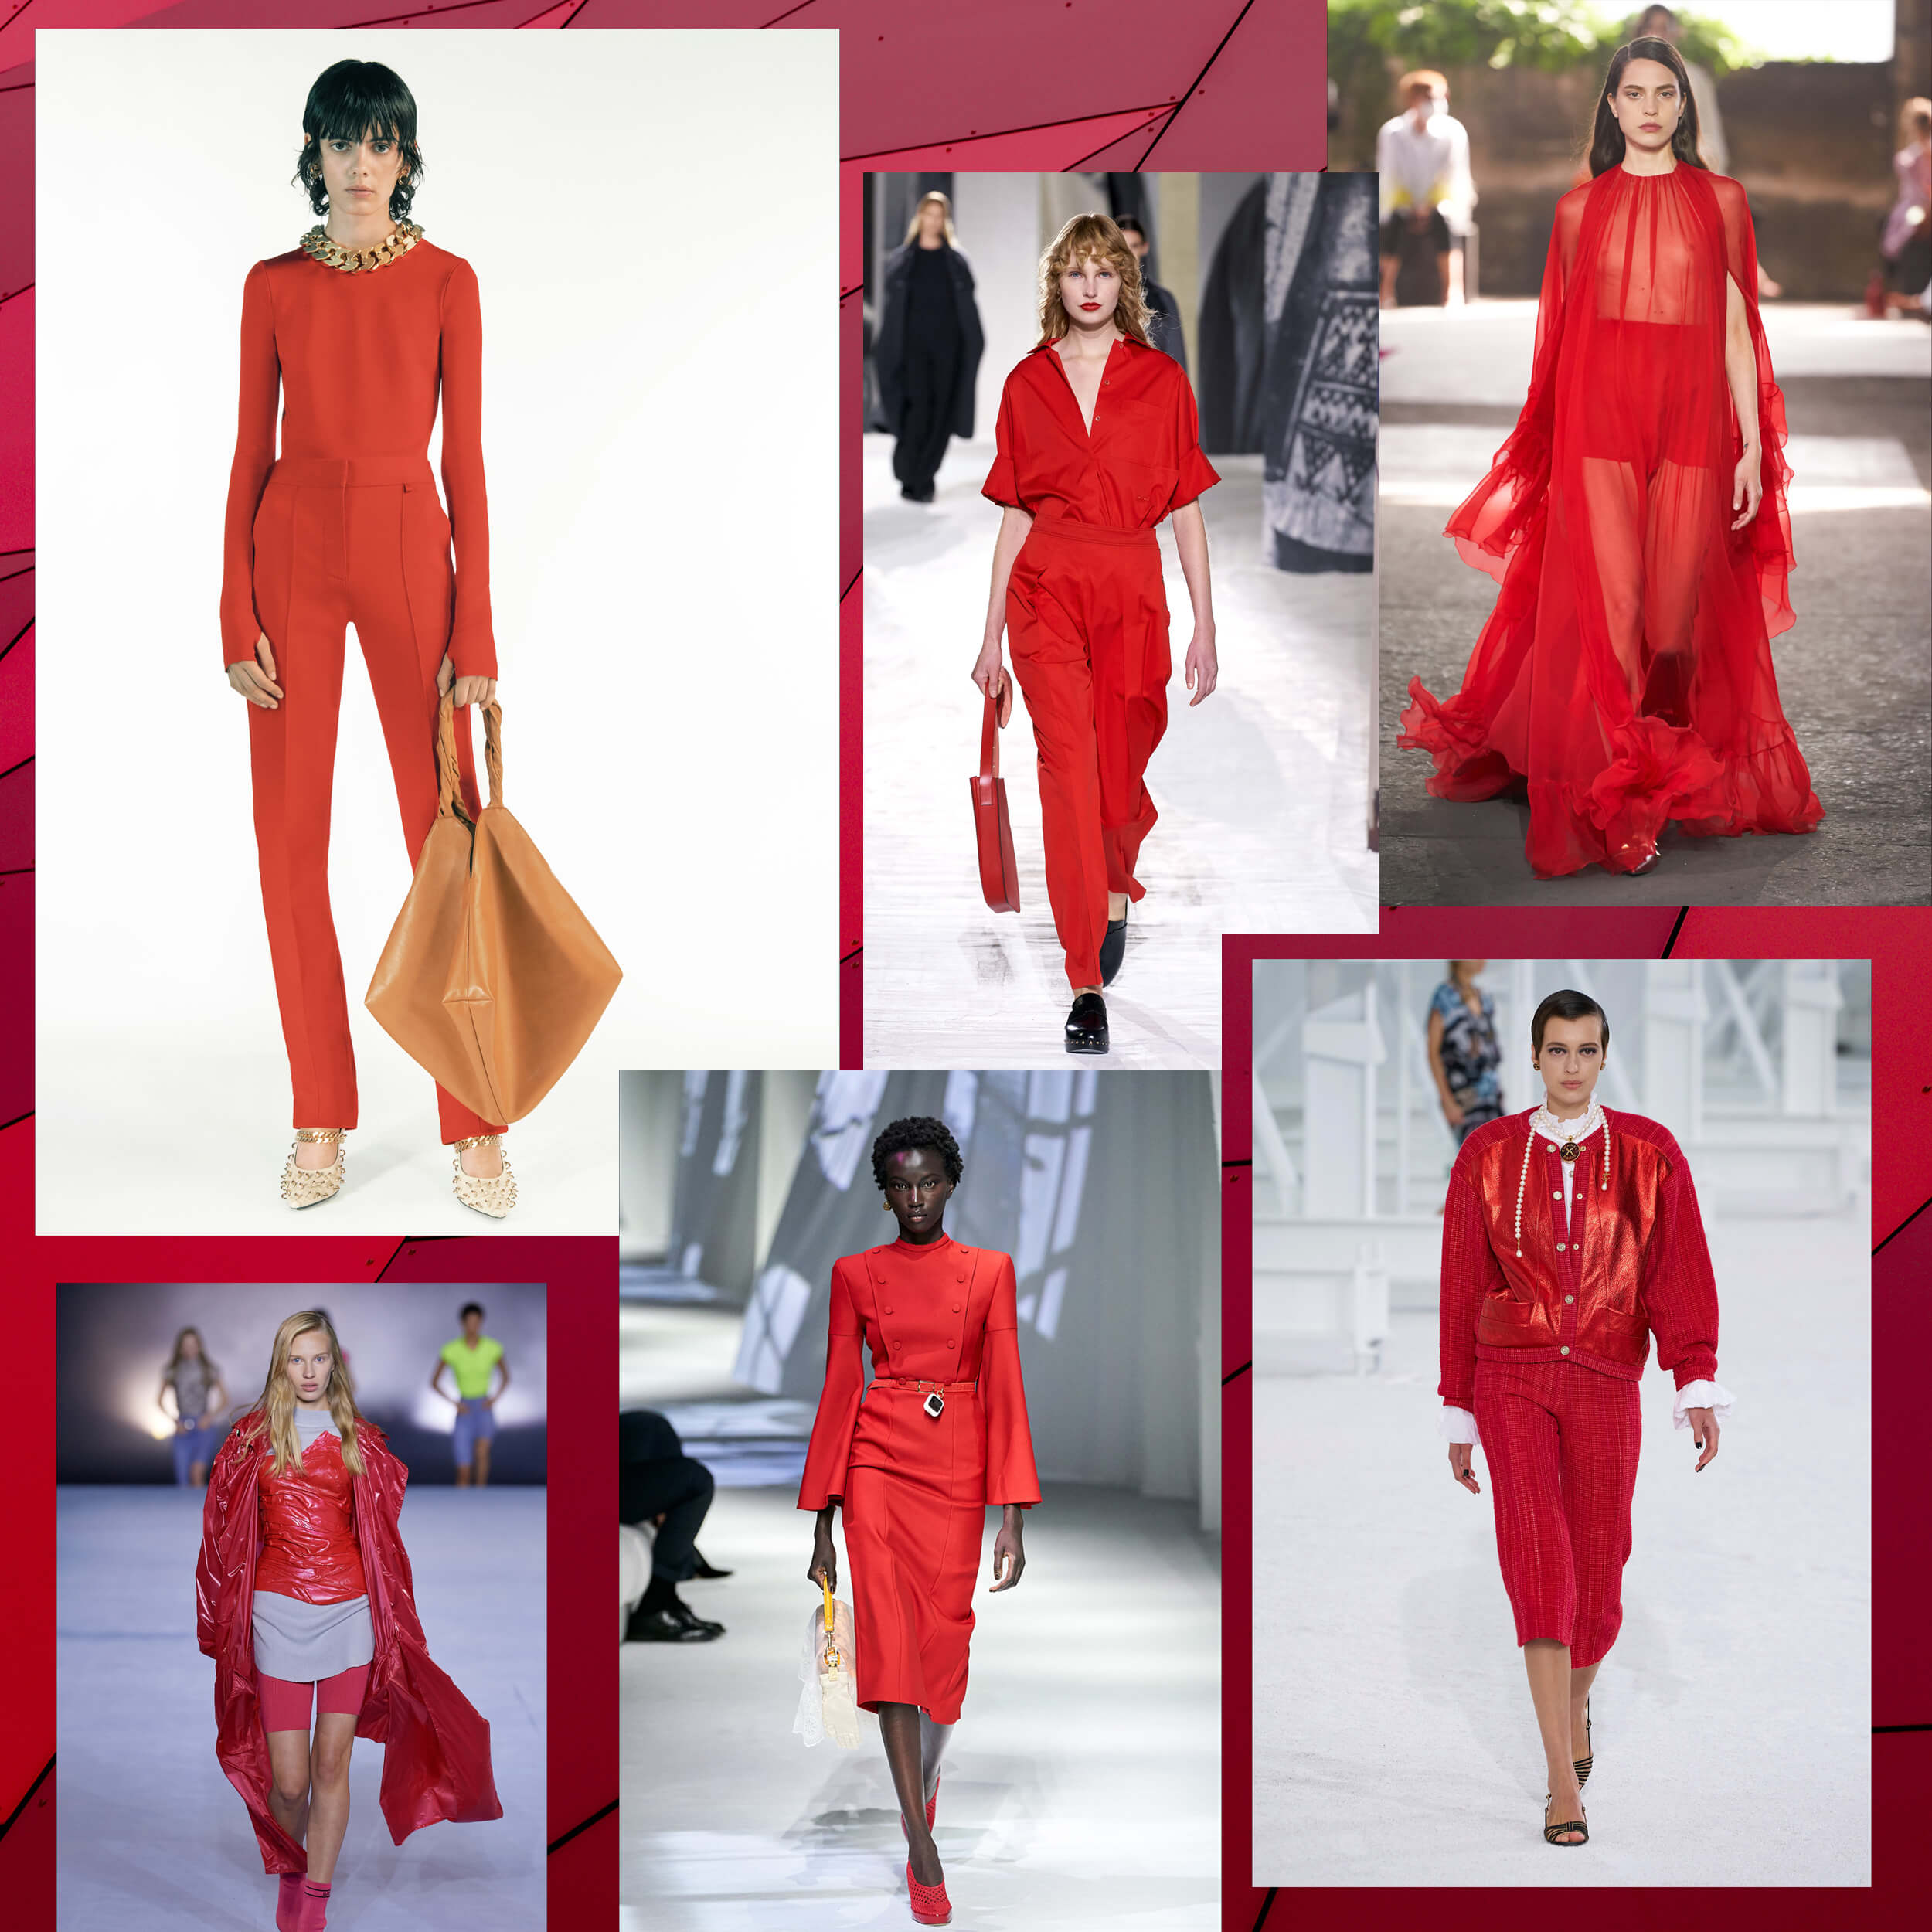 6 Trends for the Spring/Summer 6 – The Italian Rêve